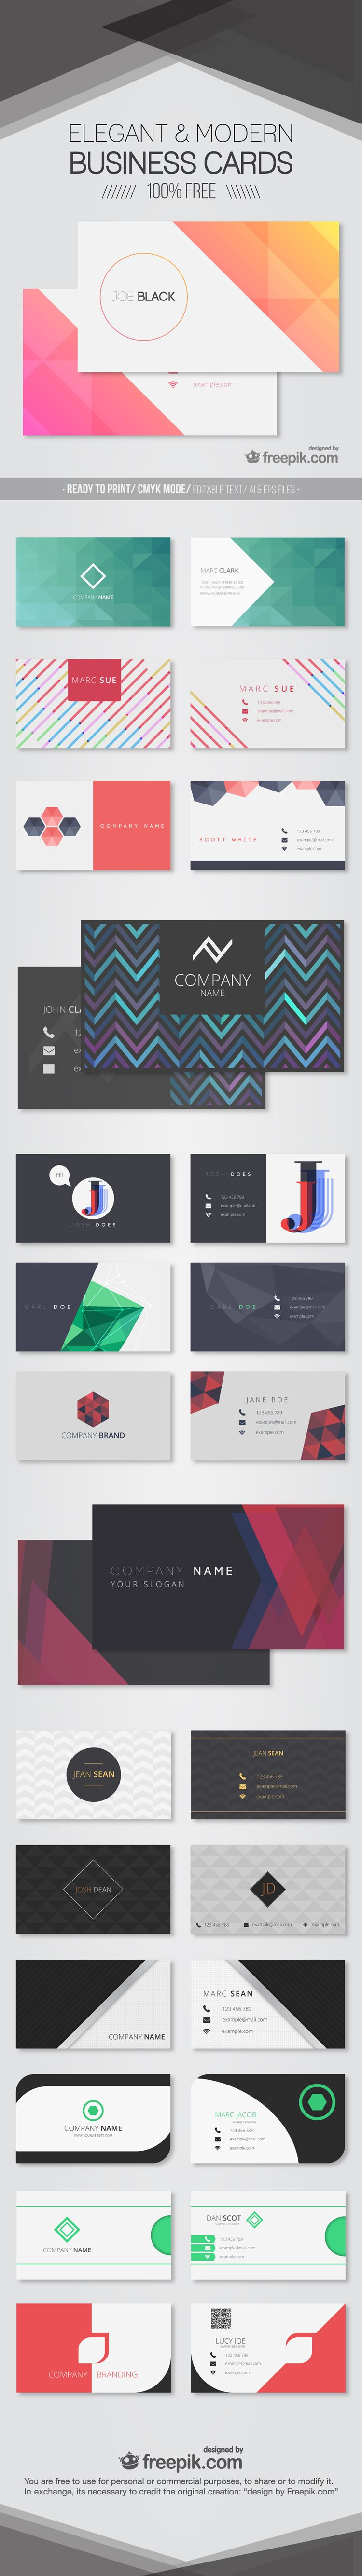 30 Free Modern Business Card Templates Business Cards Card